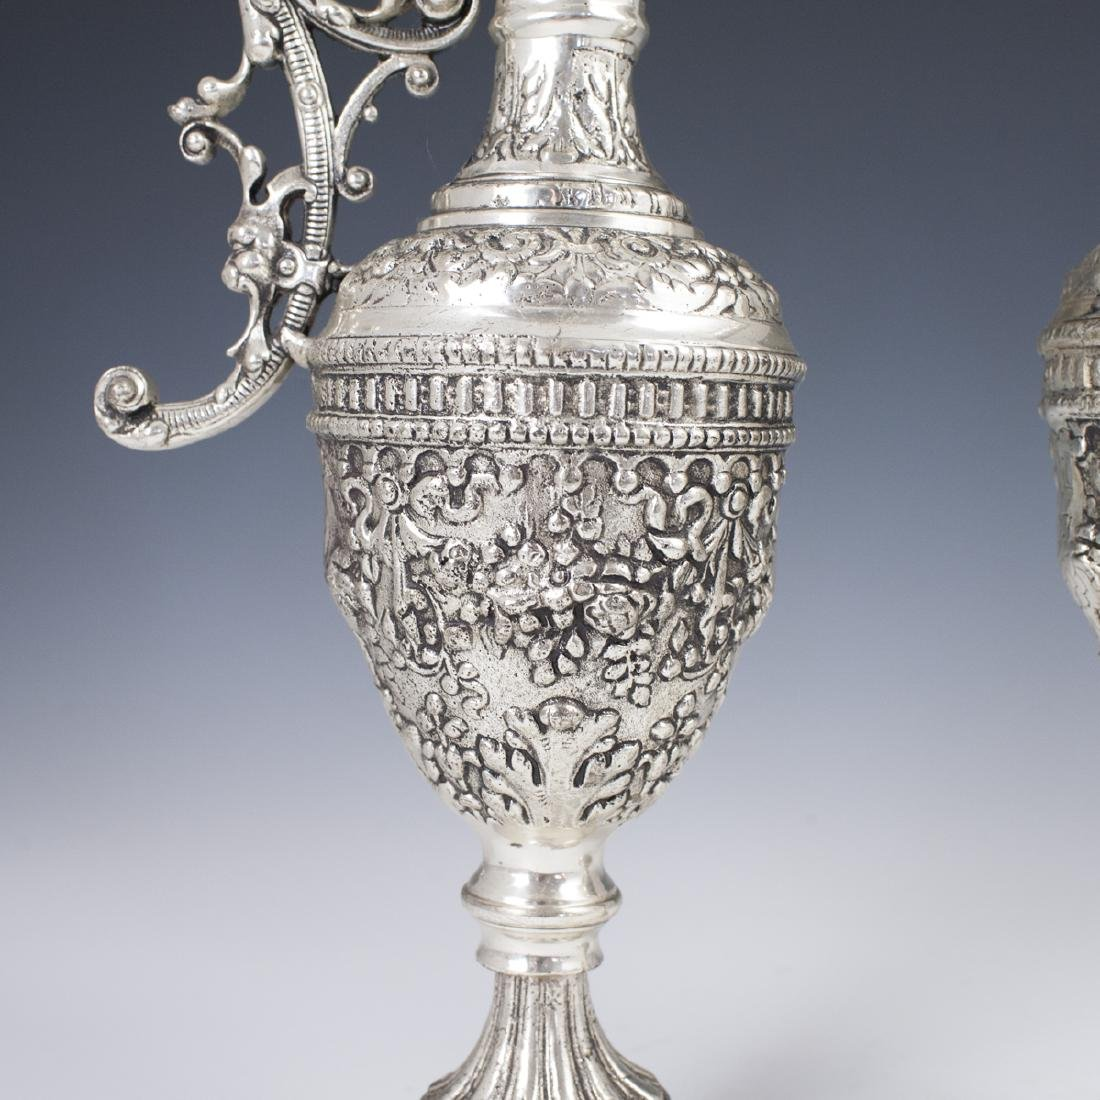 Vintage Baroque Silver Plated Ewers - 2